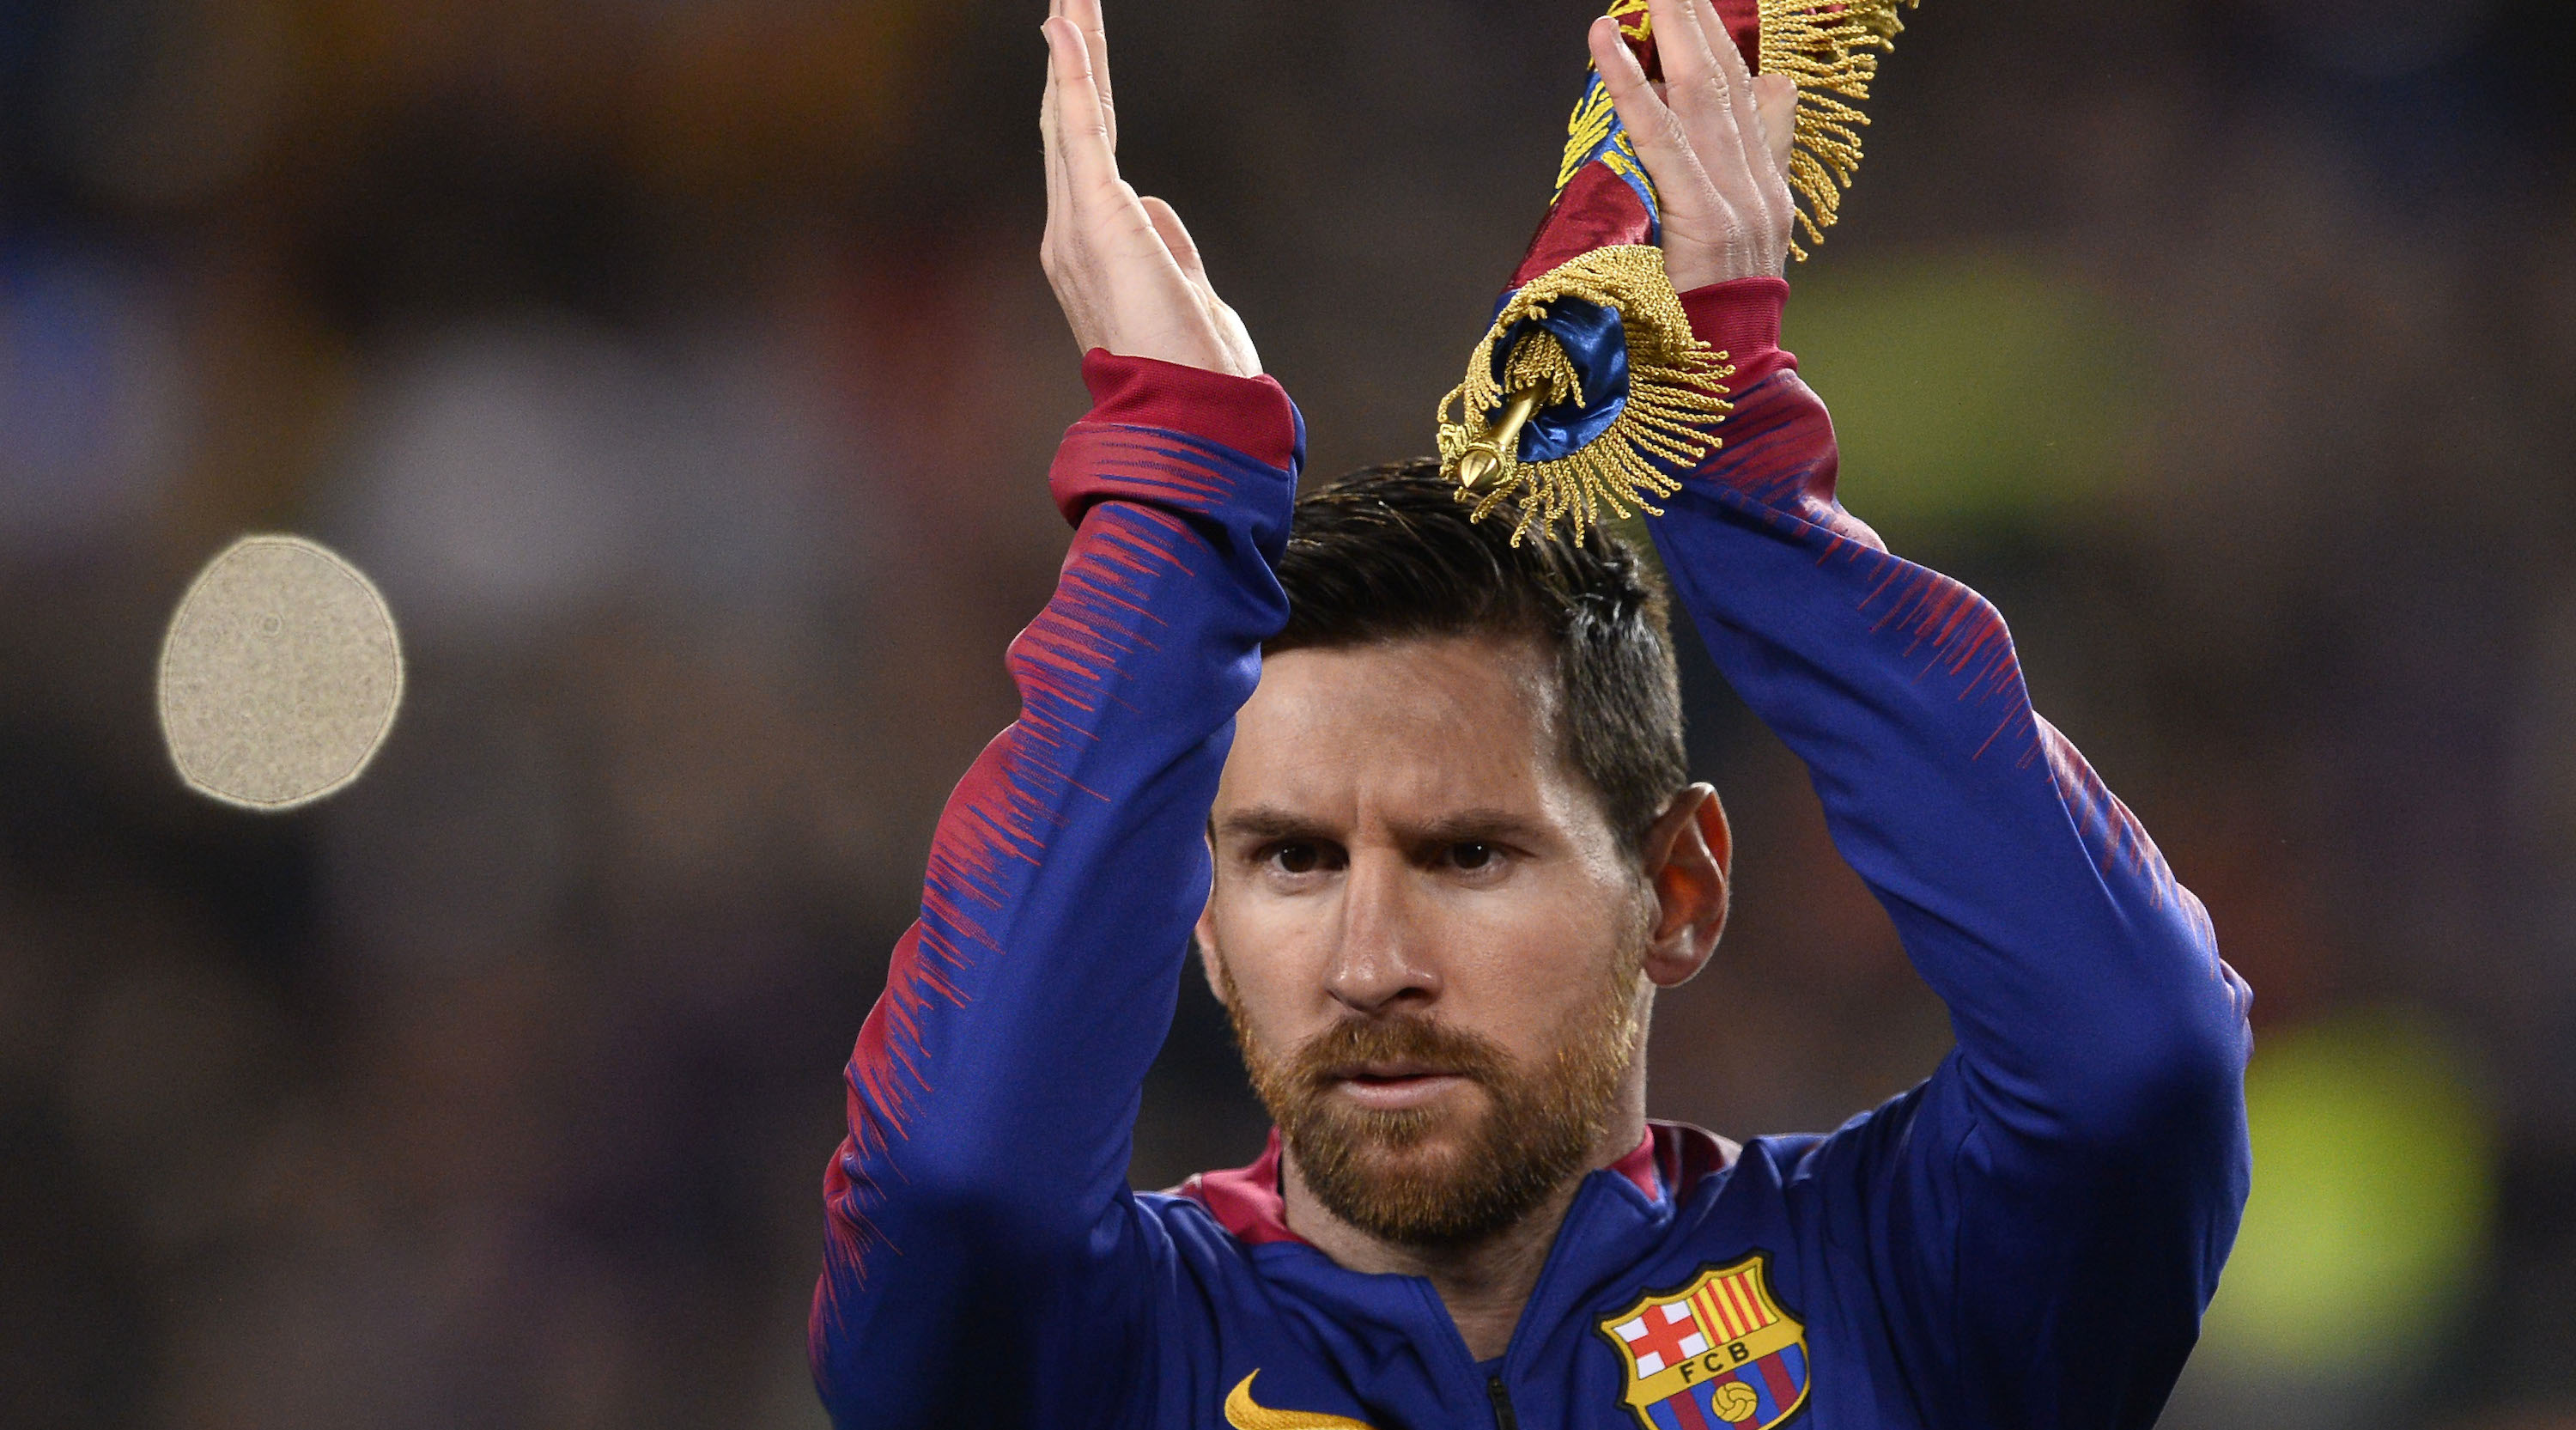 Barcelona's Argentinian forward Lionel Messi celebrates after scoring during the UEFA Champions League round of 16, second leg football match between FC Barcelona and Olympique Lyonnais at the Camp Nou stadium in Barcelona on March 13, 2019. (Photo by PAU BARRENA / AFP) (Photo credit should read PAU BARRENA/AFP/Getty Images)